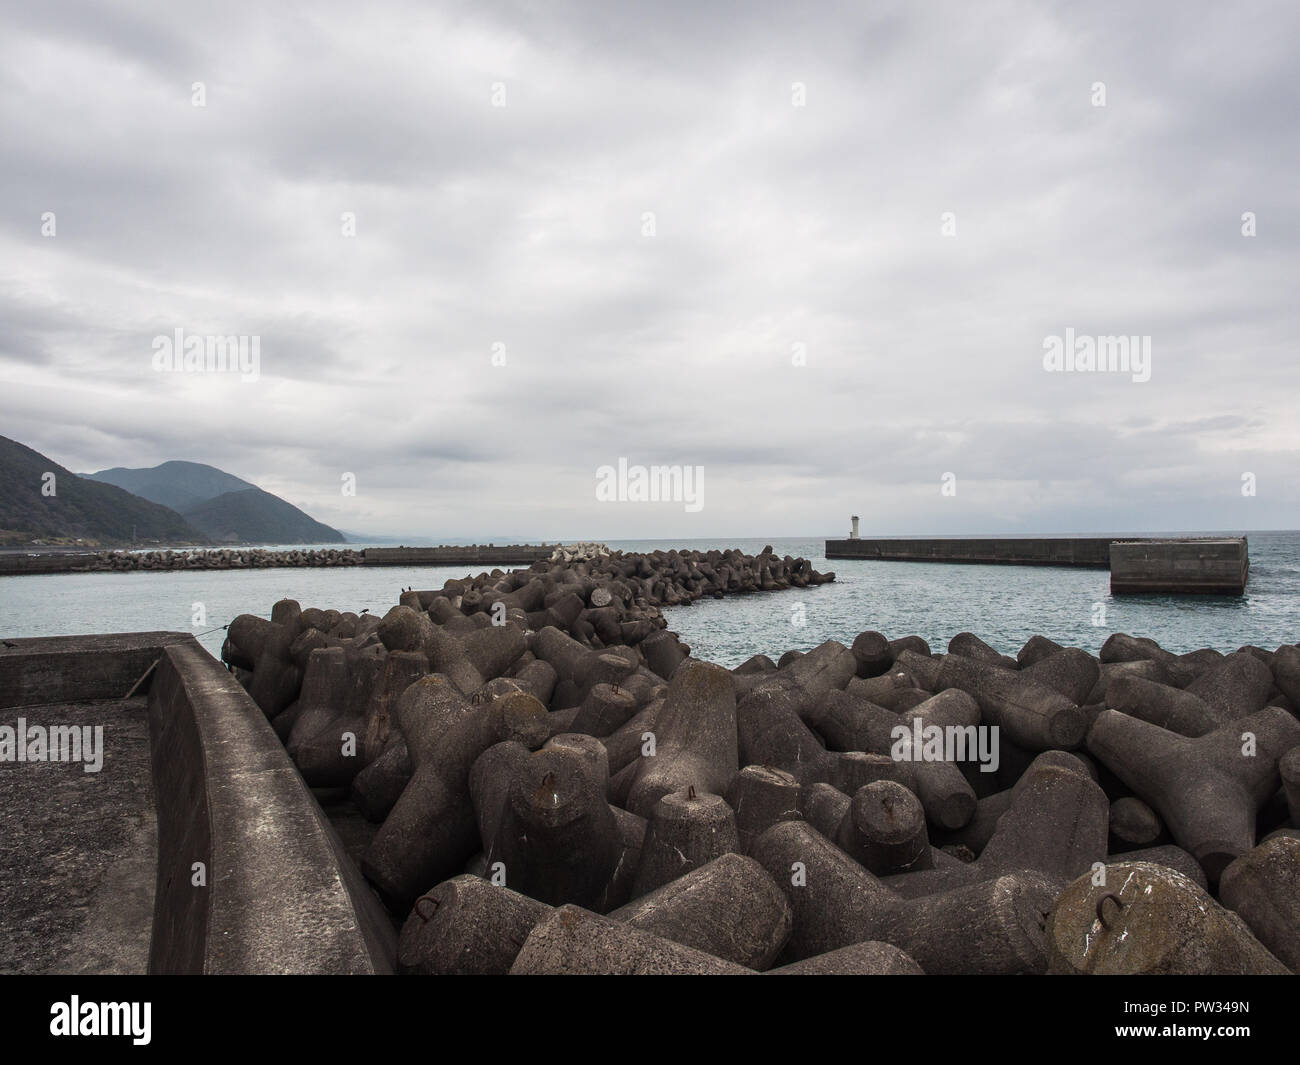 Tetrapod reef coastal protection, Highway 55, from Kannoura to Muroto, Kochi, Shikoku, Japan - Stock Image